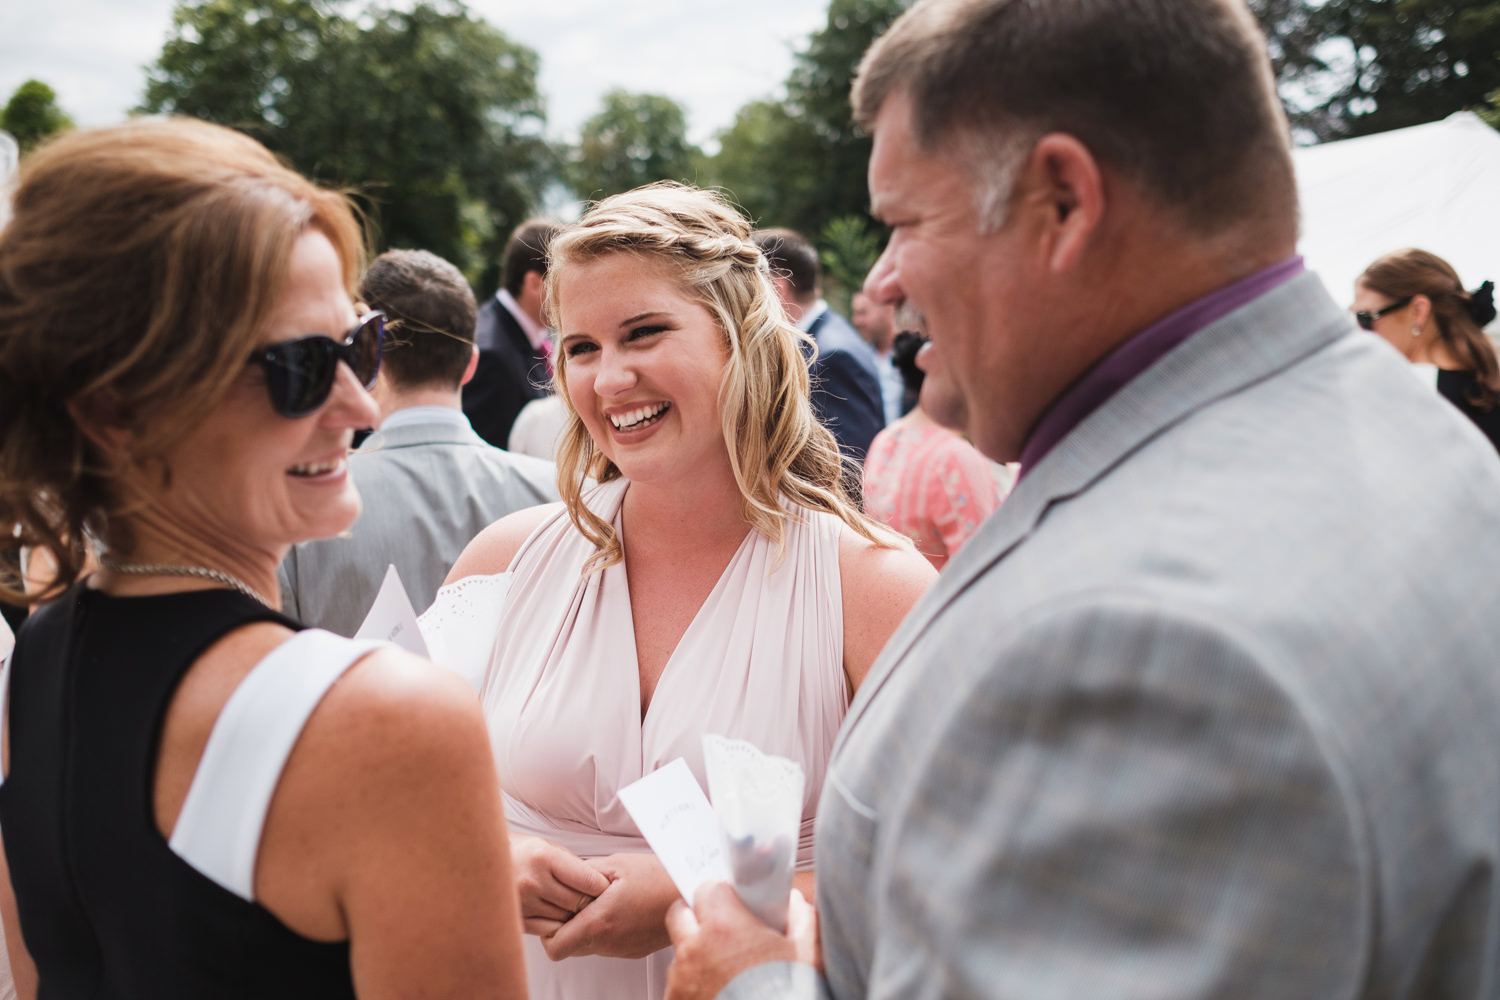 candid wedding guest photography david mcclelland